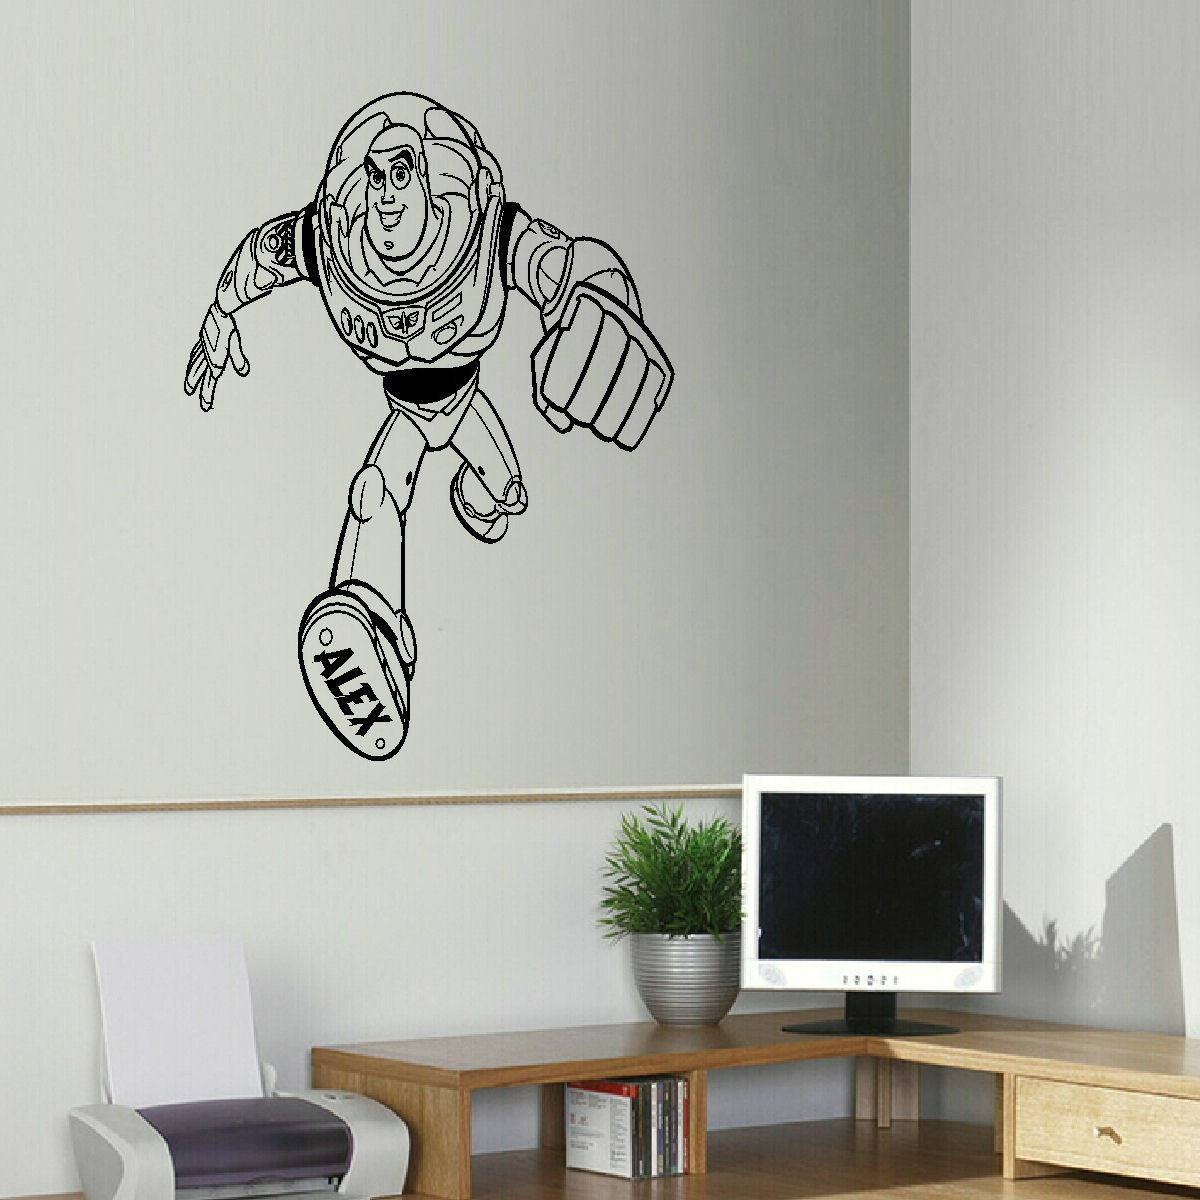 Bespoke Graphics – Childrens Wall Art Decals Stickers Inside Current Toy Story Wall Art (View 6 of 30)